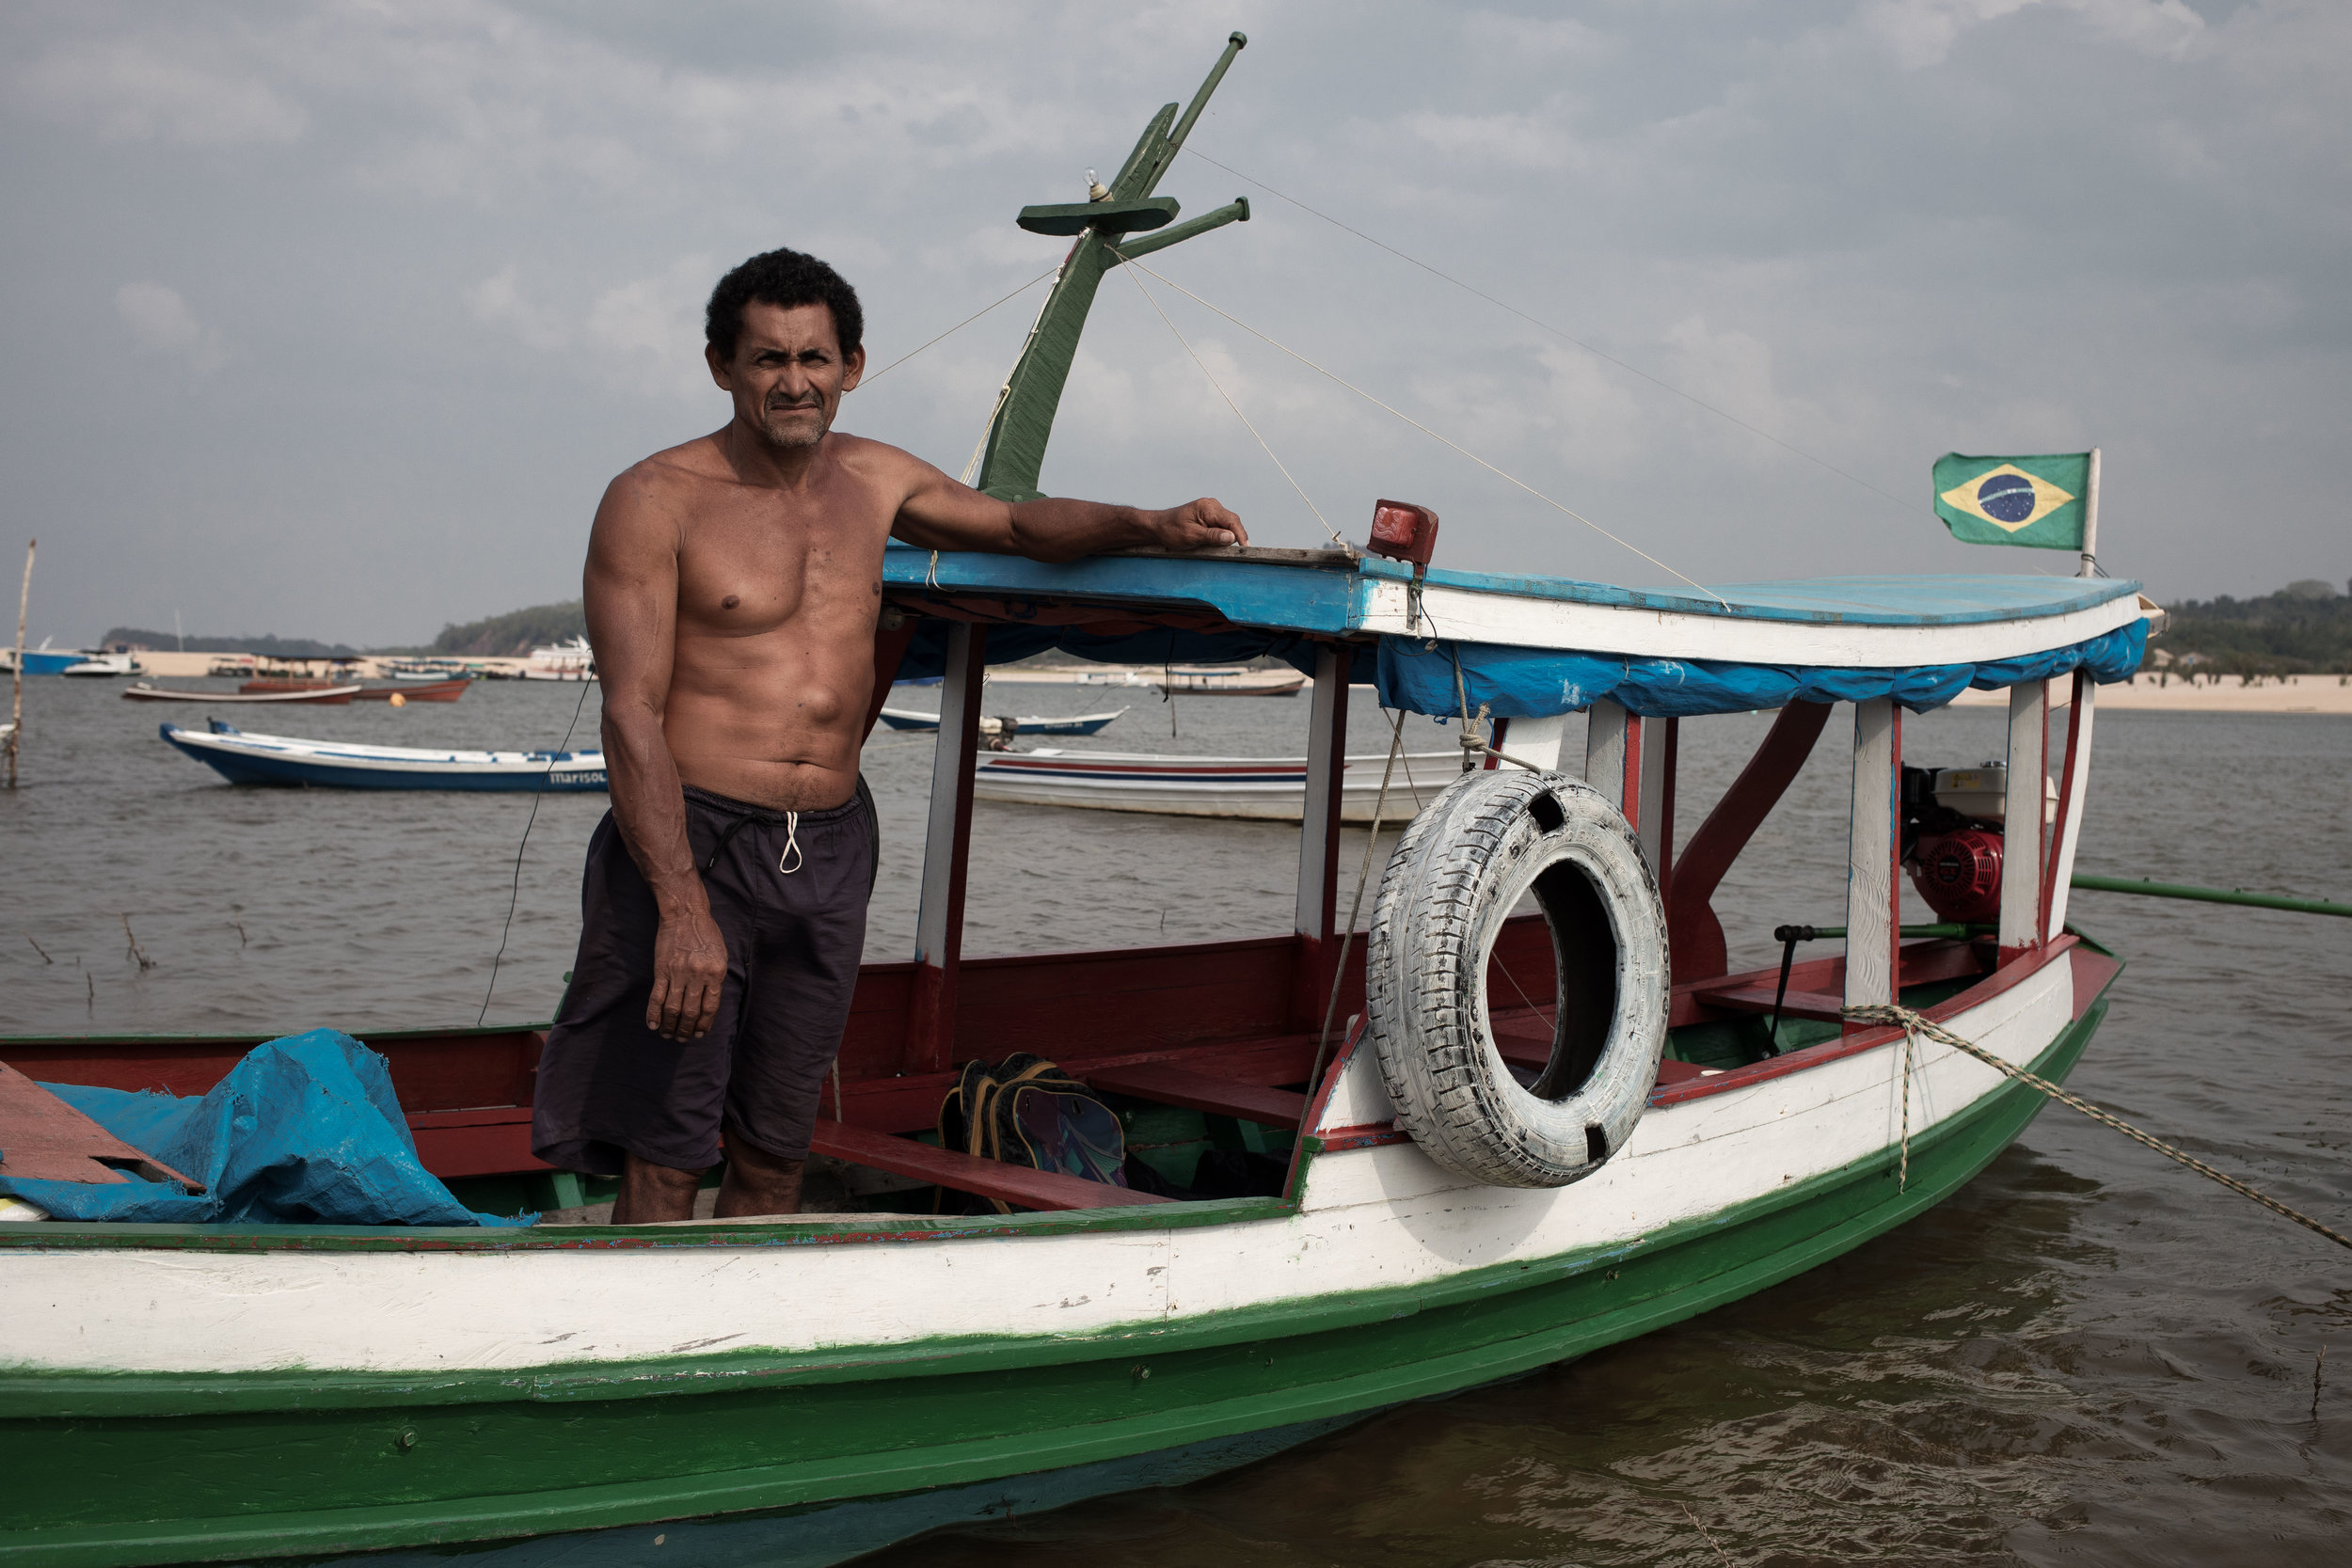 A man stands on his boat in Alter do chão, Brazil.